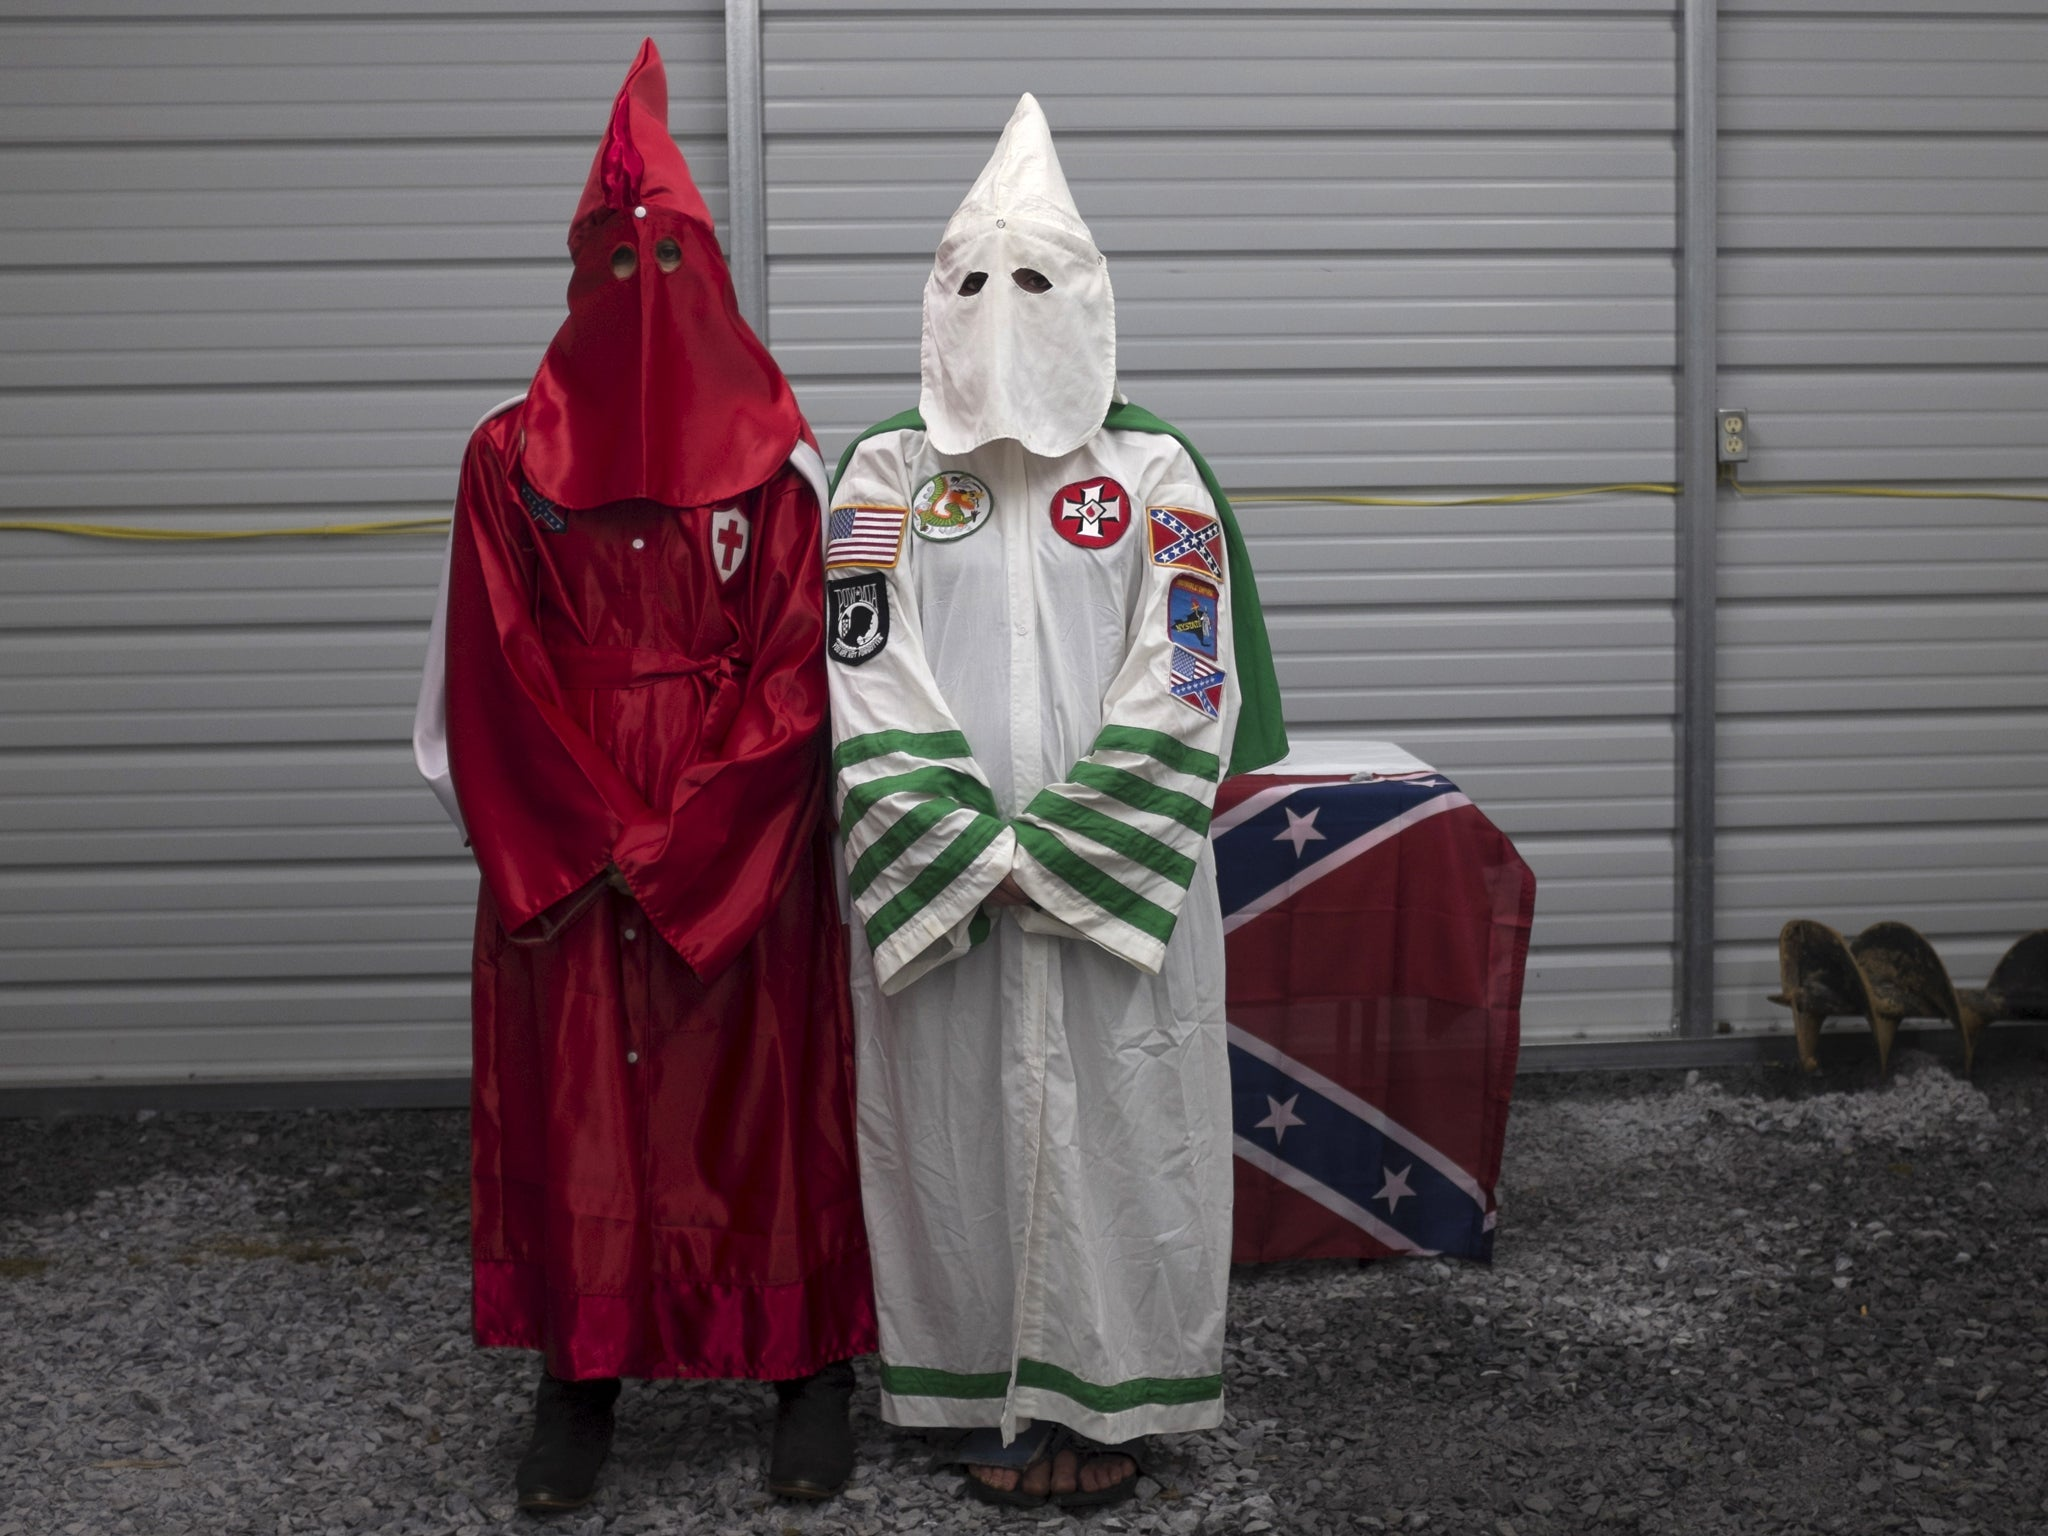 biography ku klux klan Under the leadership of william joseph simmons the ku klux klan promoted a program called wizard of the invisible empire of the knights of the ku klux klan.